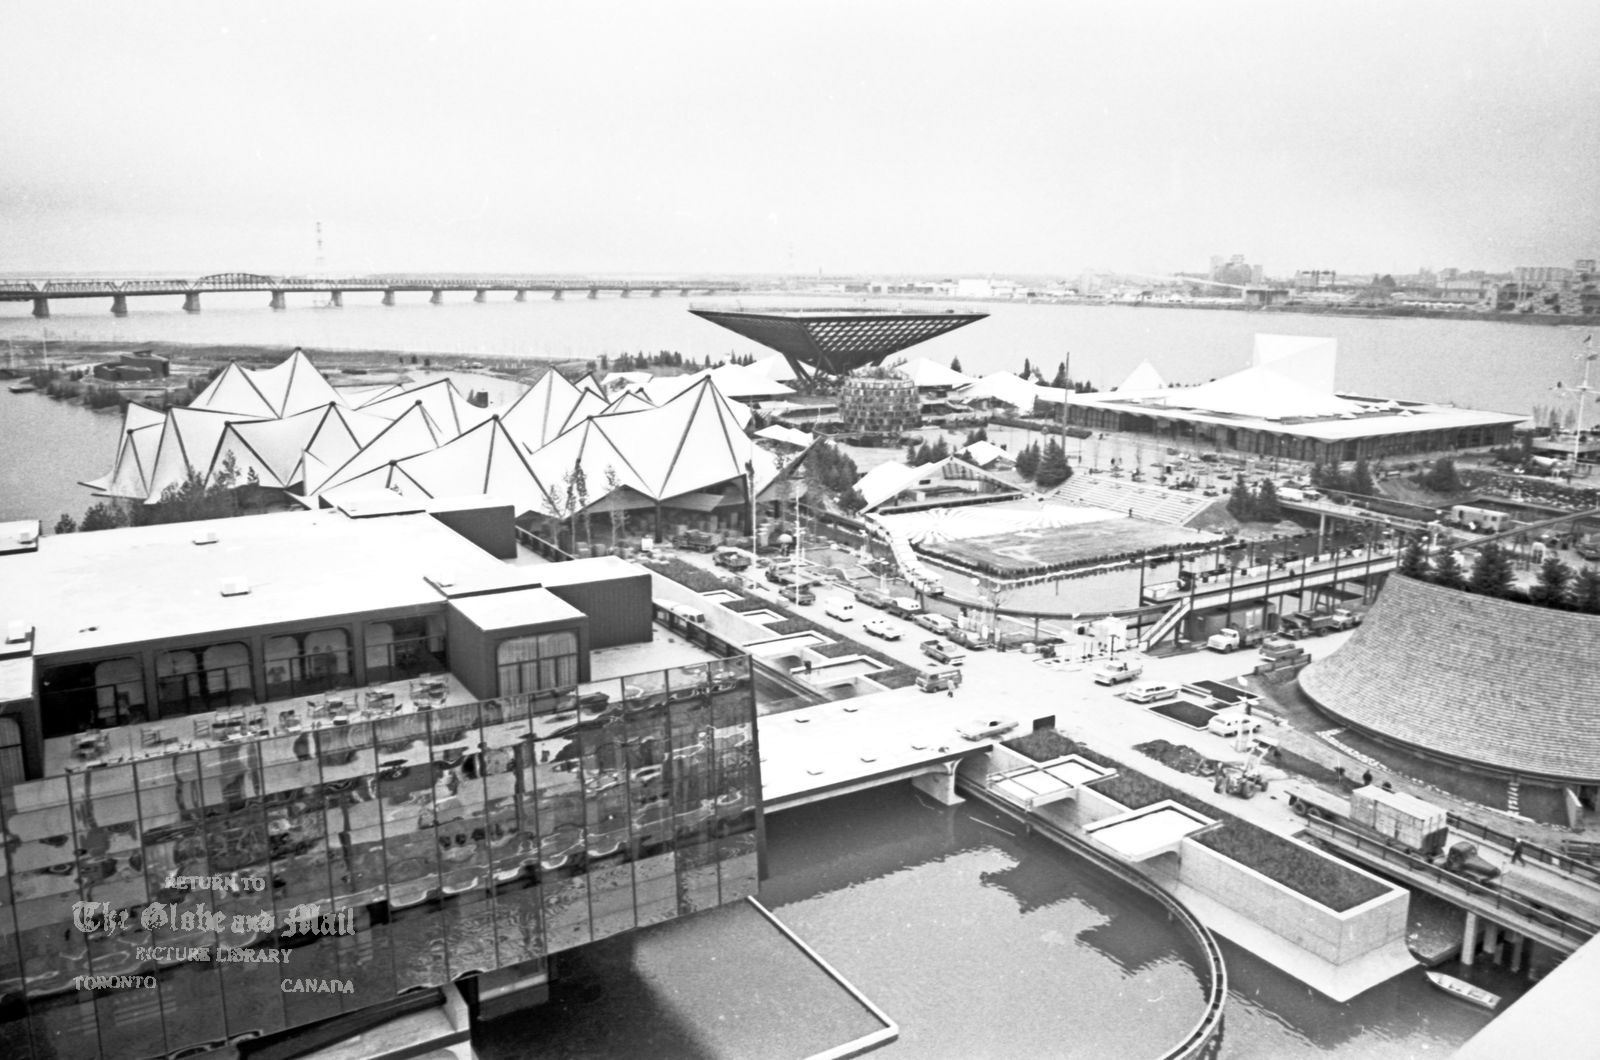 MONTREAL -- EXPO 67 -- View of the fairgrounds prior to opening, April 24, 1967. Credit: John McNeill / The Globe and Mail Negative #67114-35